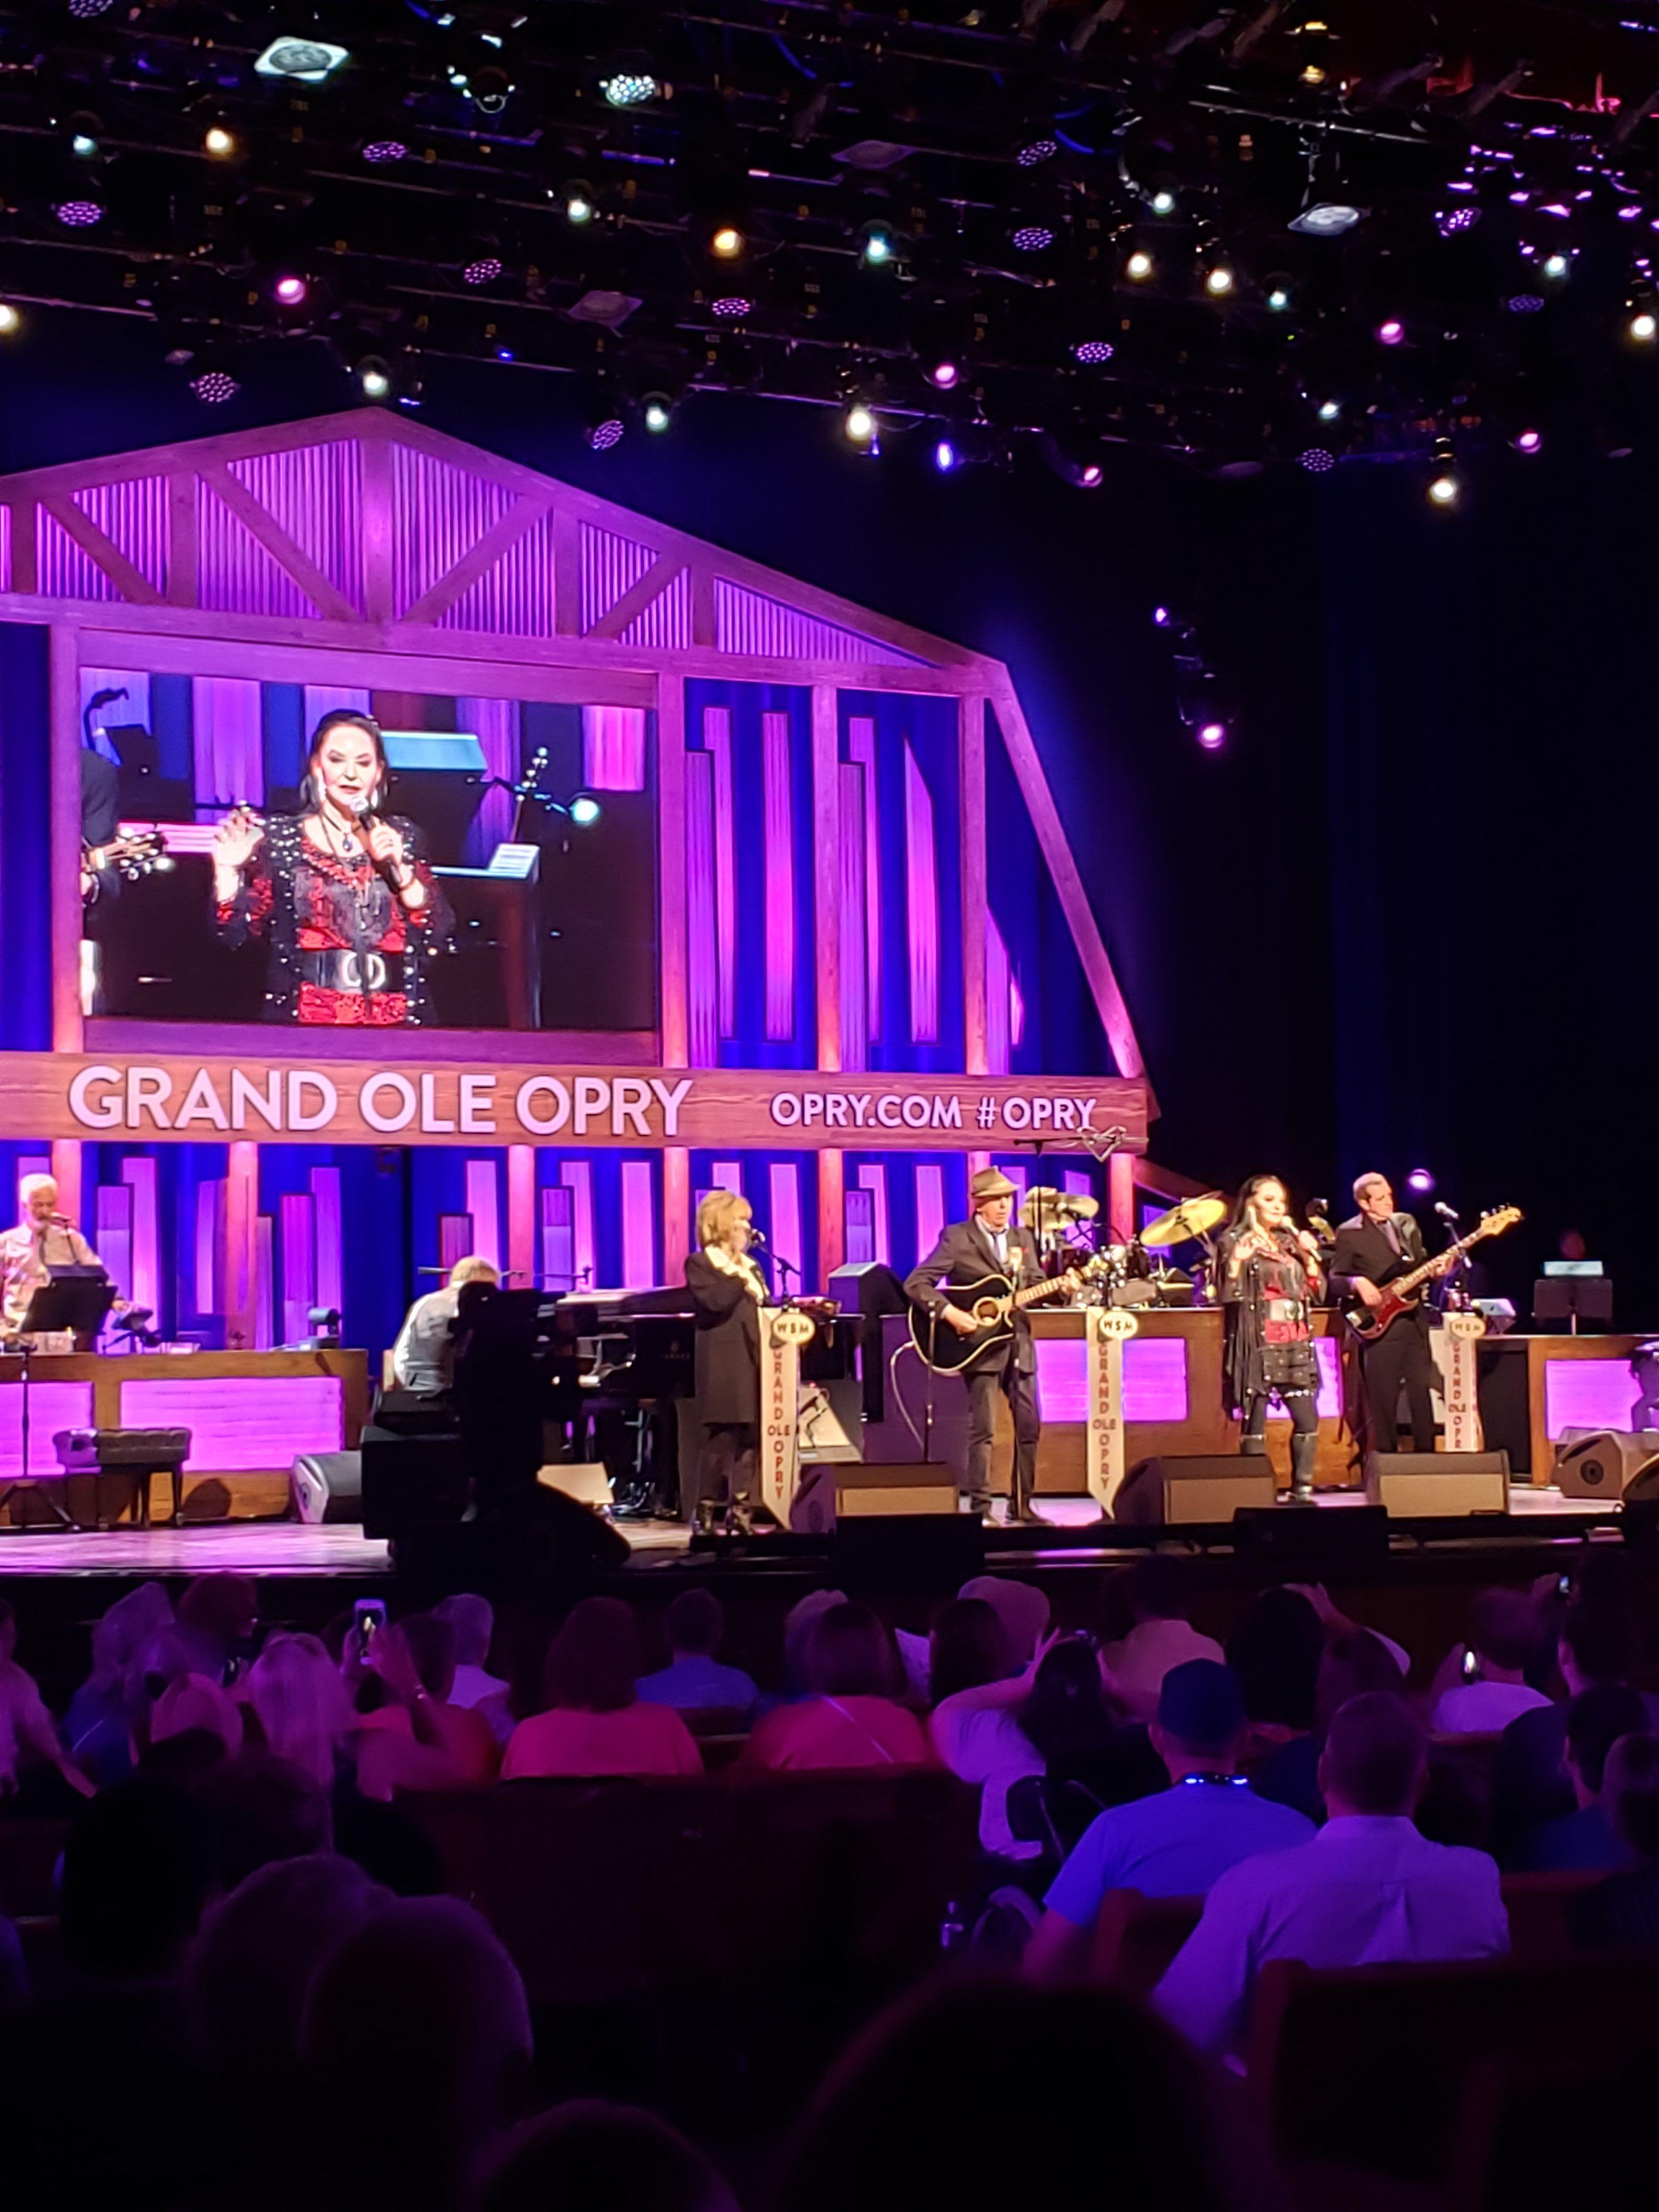 Grand Ole Opry Tickets >> Grand Ole Opry